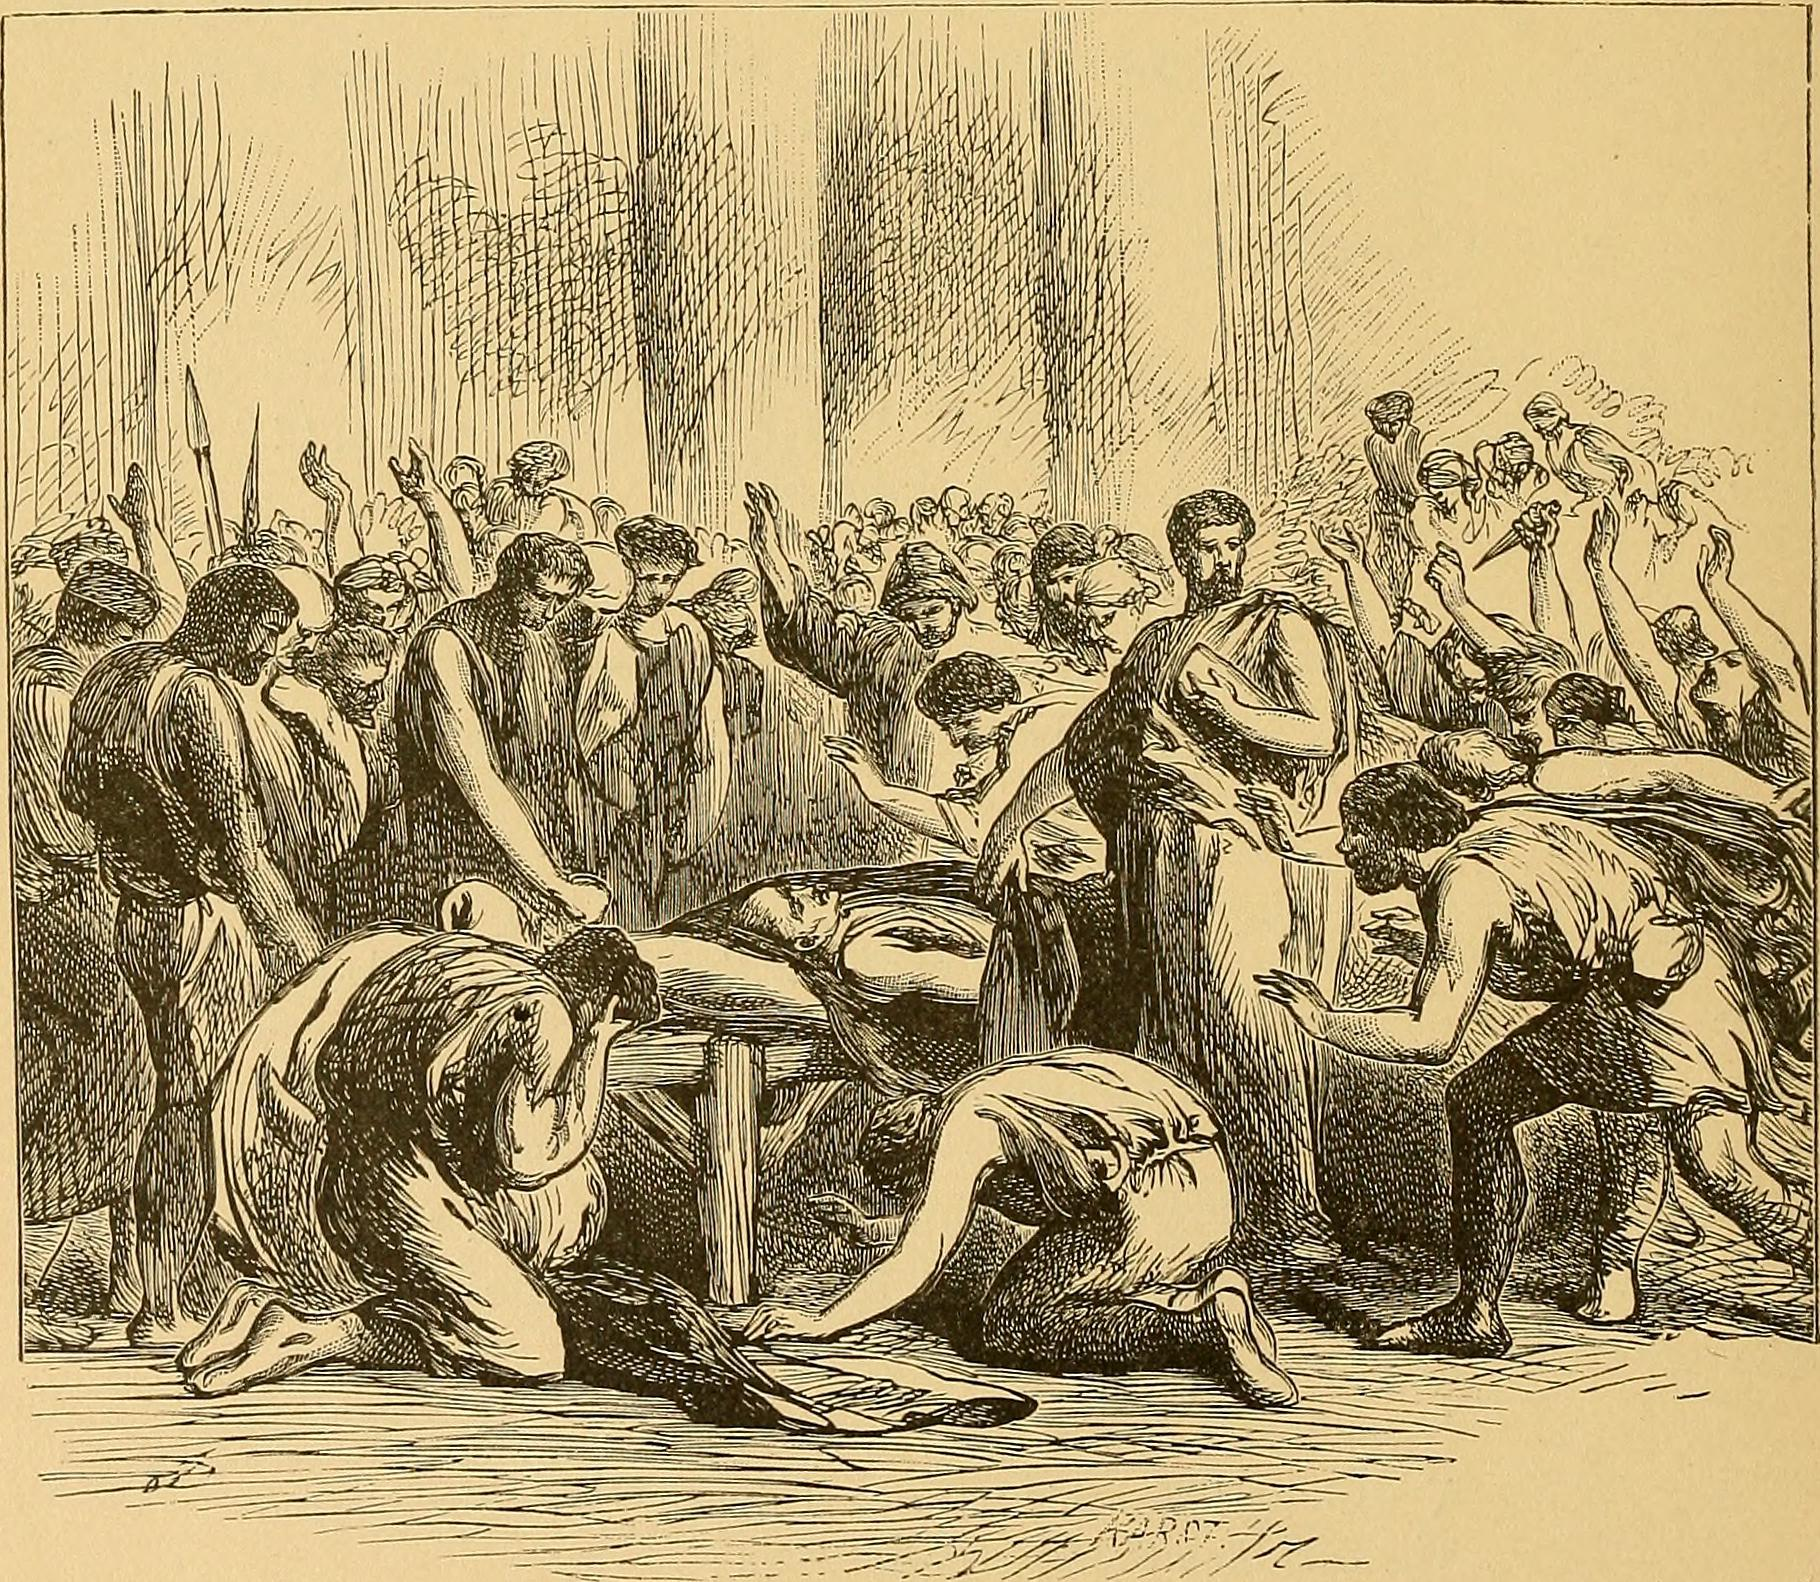 a summary of act i scene i of the play julius caesar Summary act i scene 1 this scene is set on a street in rome flavius and marullus (roman tribunes, elected officials of the roman republic) encounter a group of commoners who are away from work.